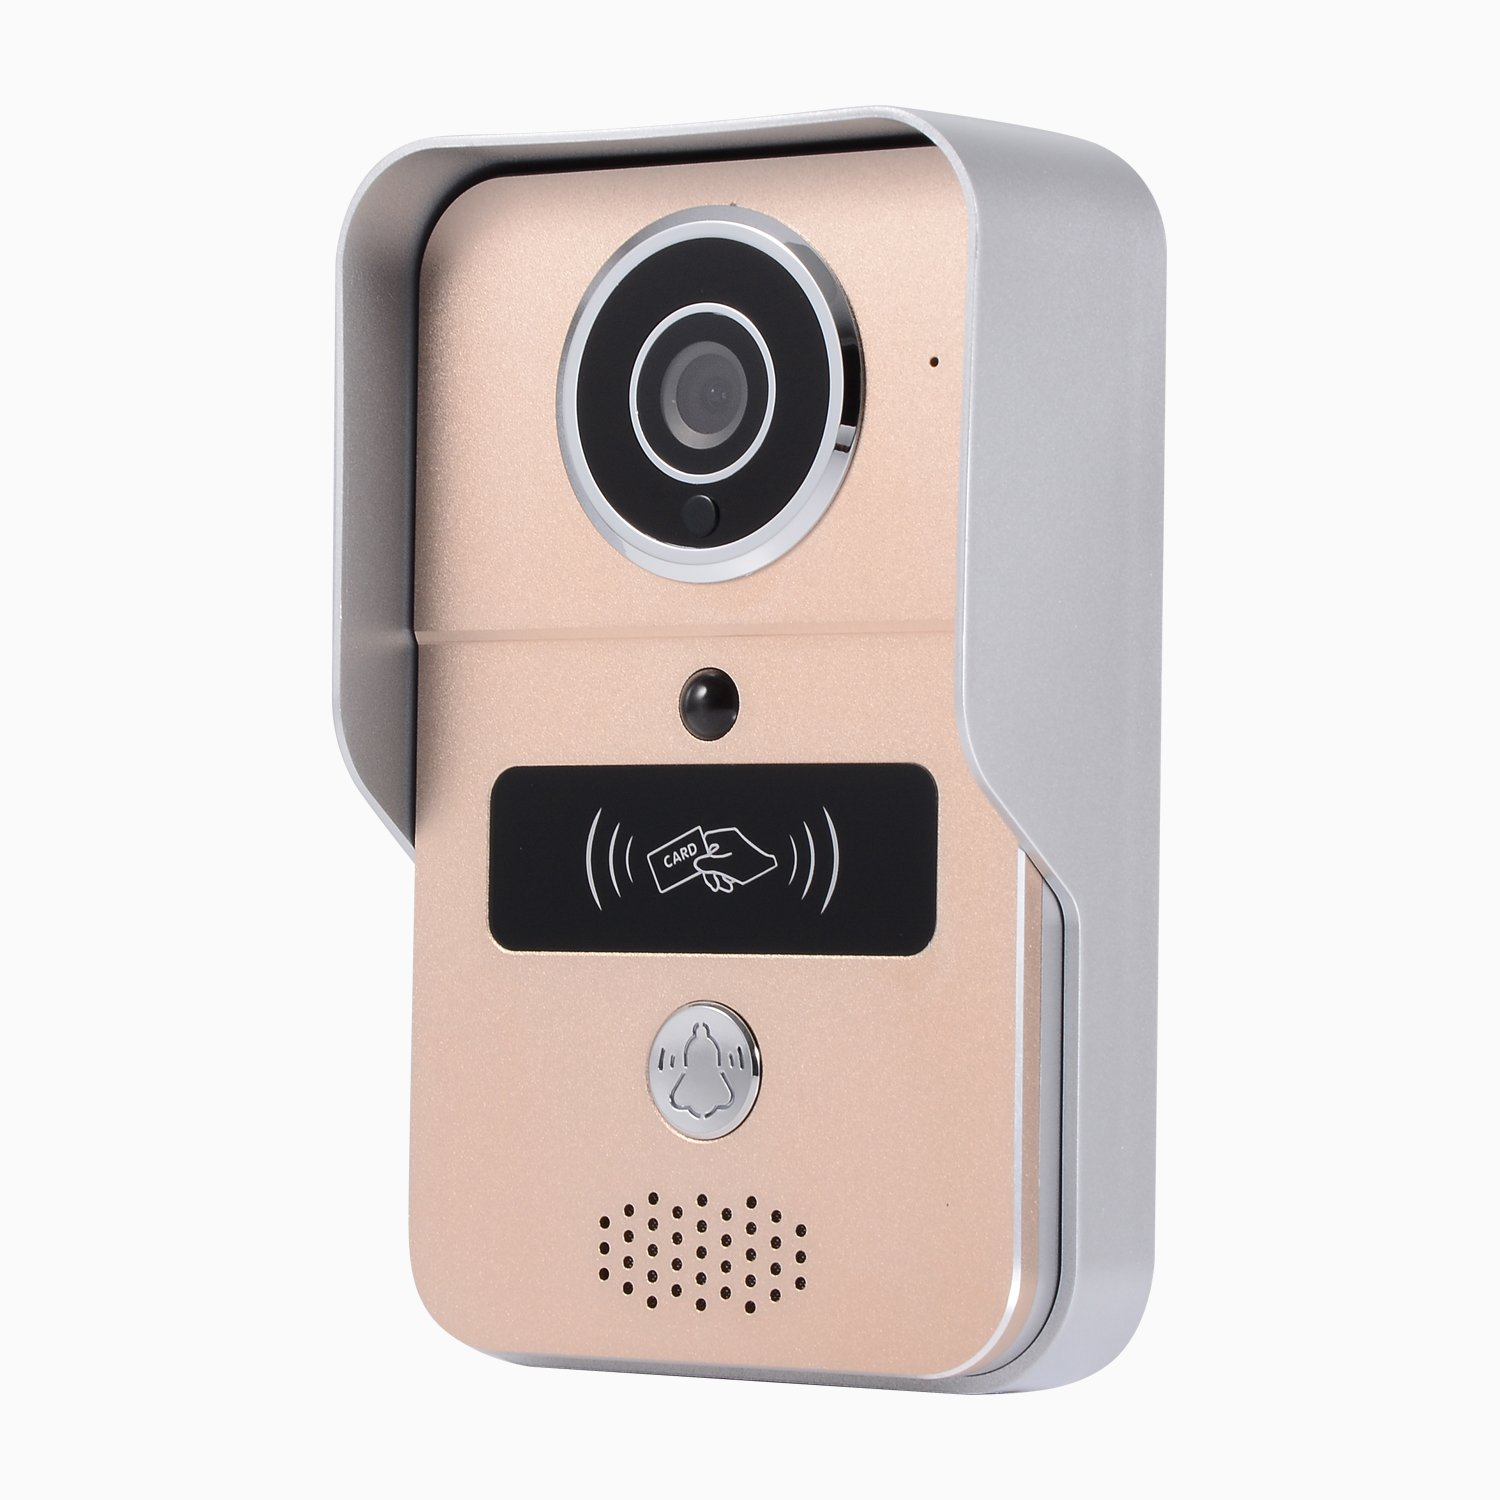 WIFI Video Doorbell , 720P HD Smart Wireless Alarm Security System, Camera and PIR Motion Detection, Night Vision,two-way Audio&Video ,Smart lock IC Card, support IOS and Android